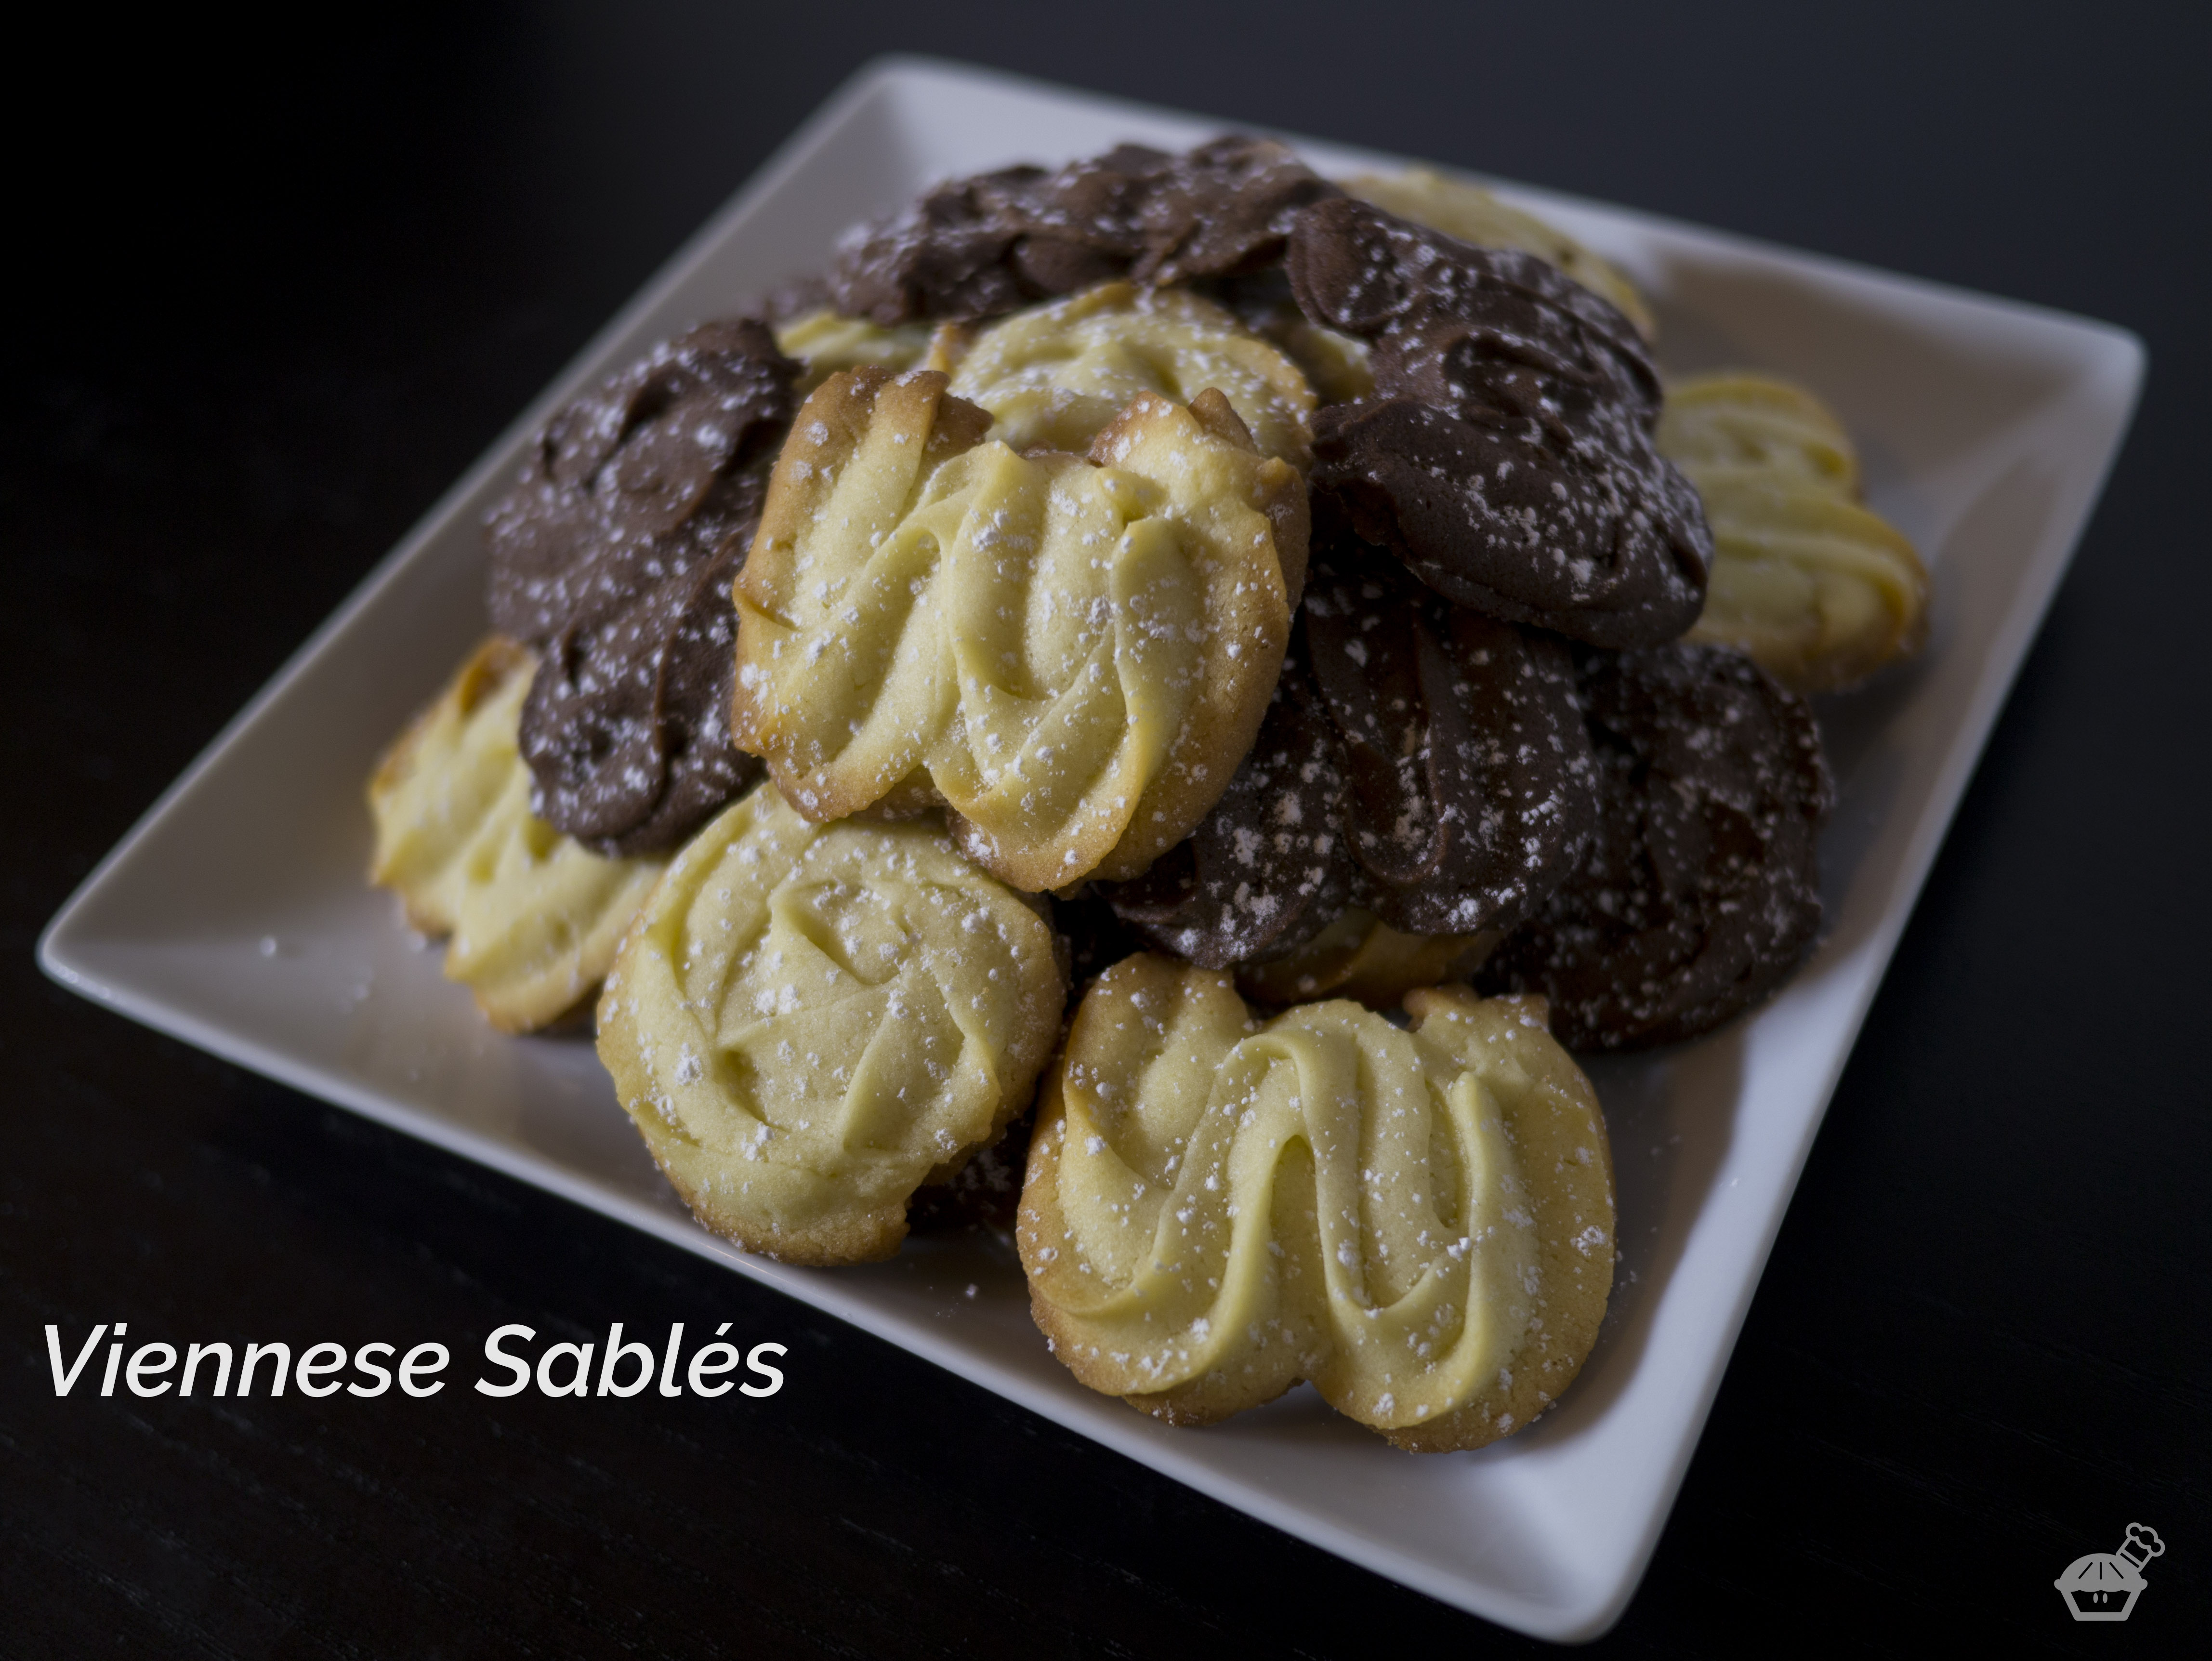 Viennese Sables